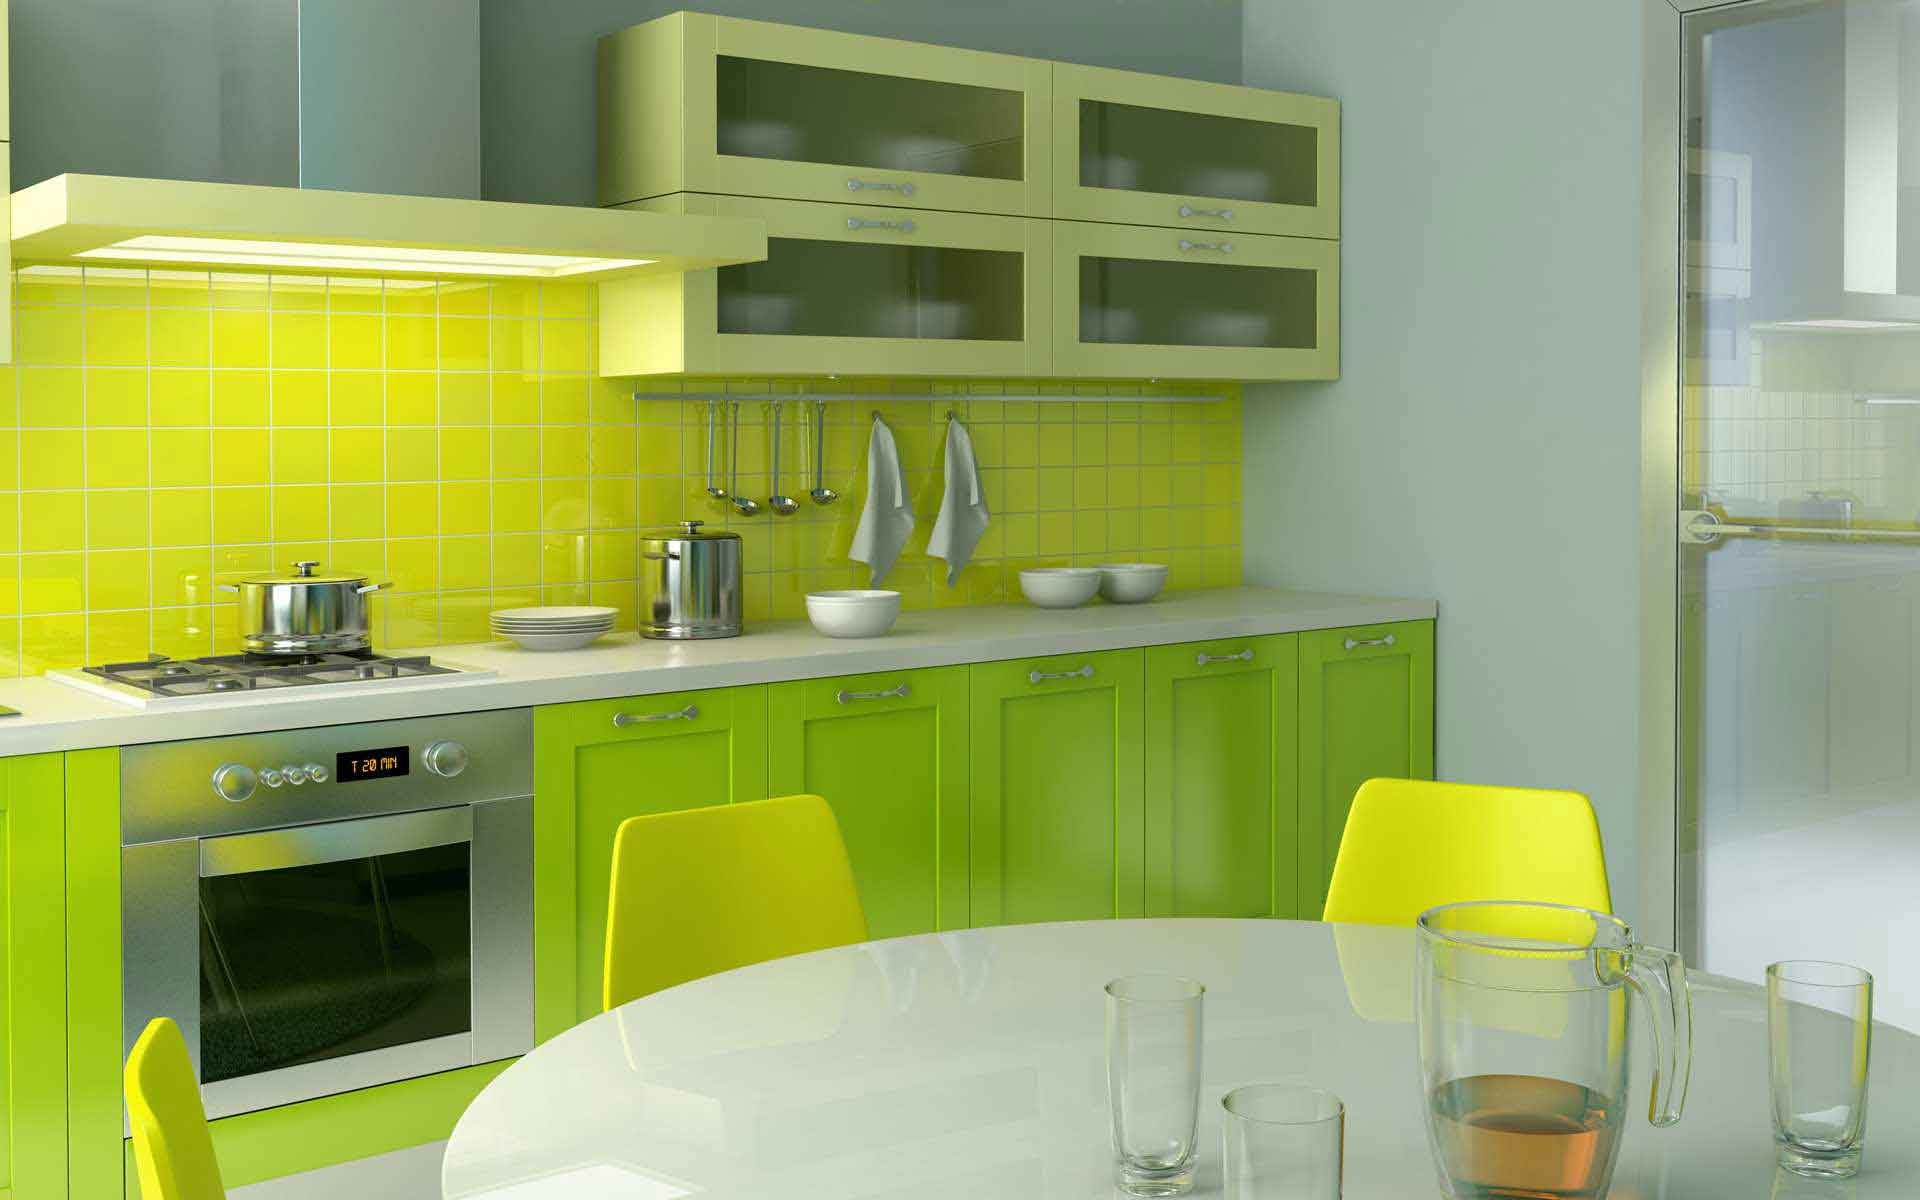 A Straight Kitchen Is A One Wall Kitchen Layout With Counter Space On Both  Sides Of The Cooking Range. Ideal For Small Kitchen Areas, This Design Can  ...